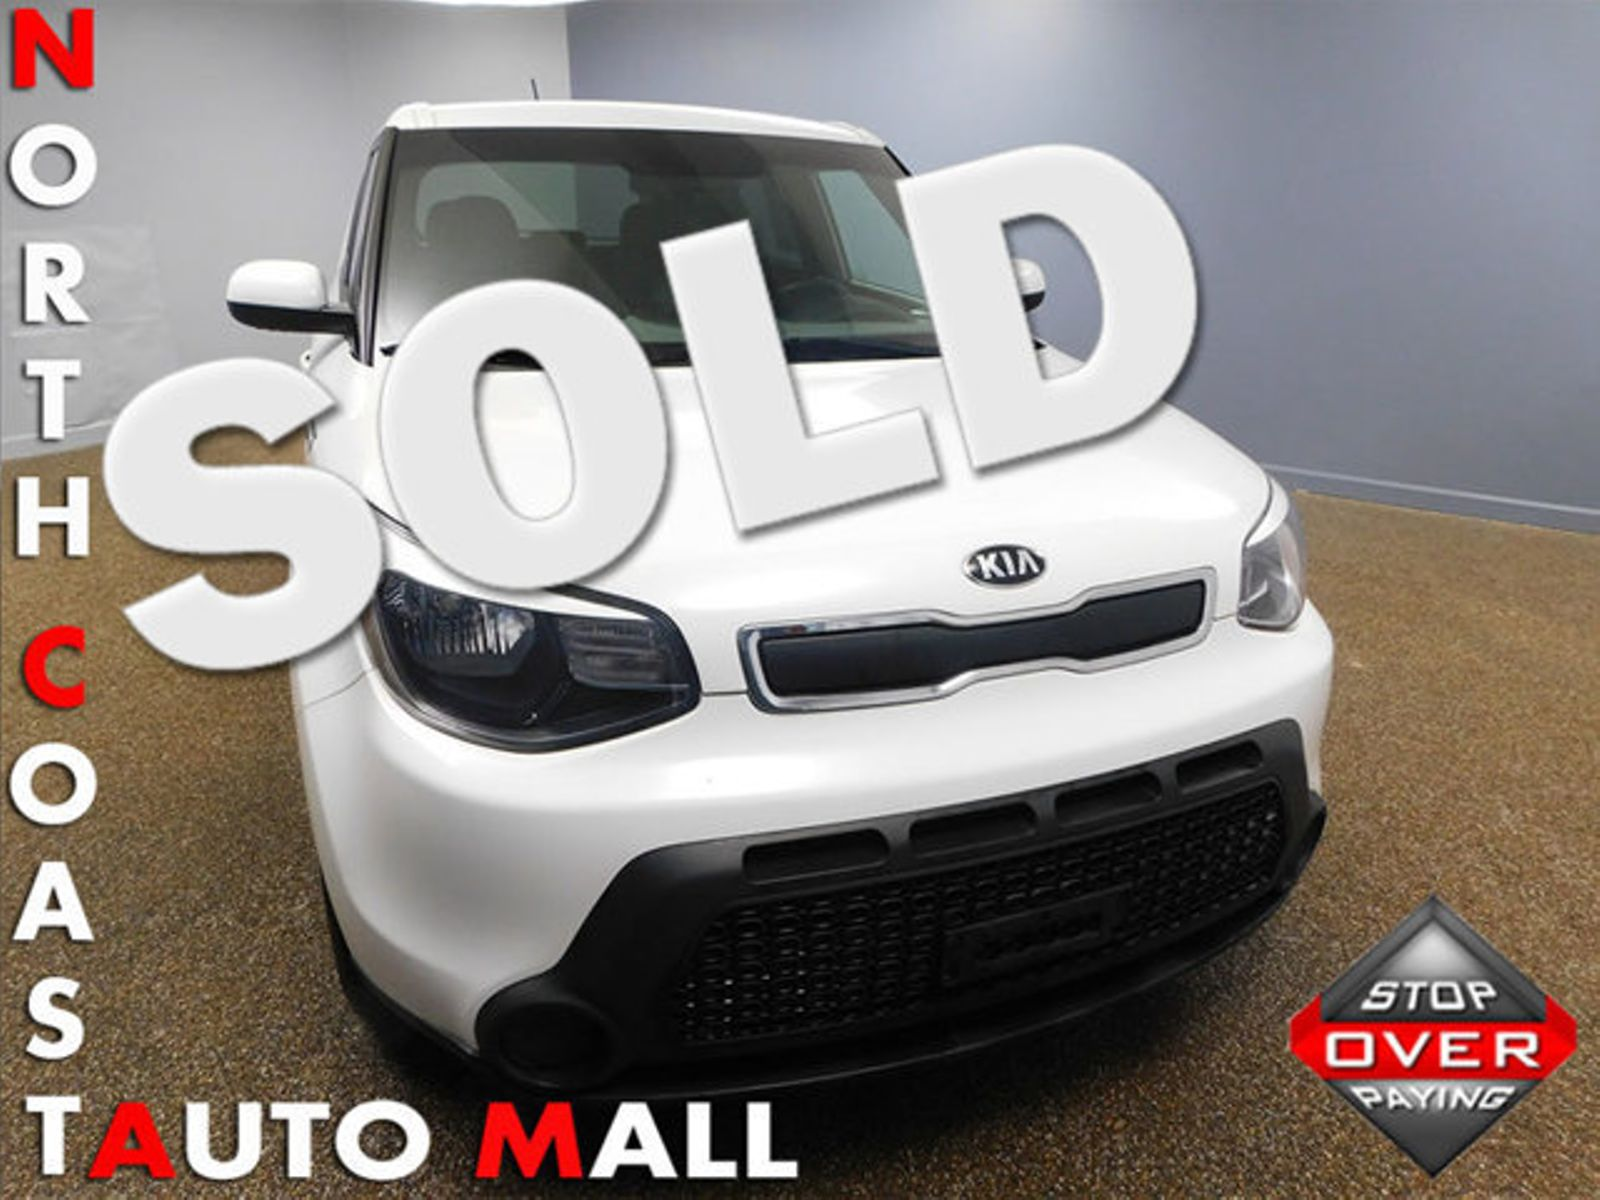 img and bedford for used oh cars kia auto com sale sportage in of new